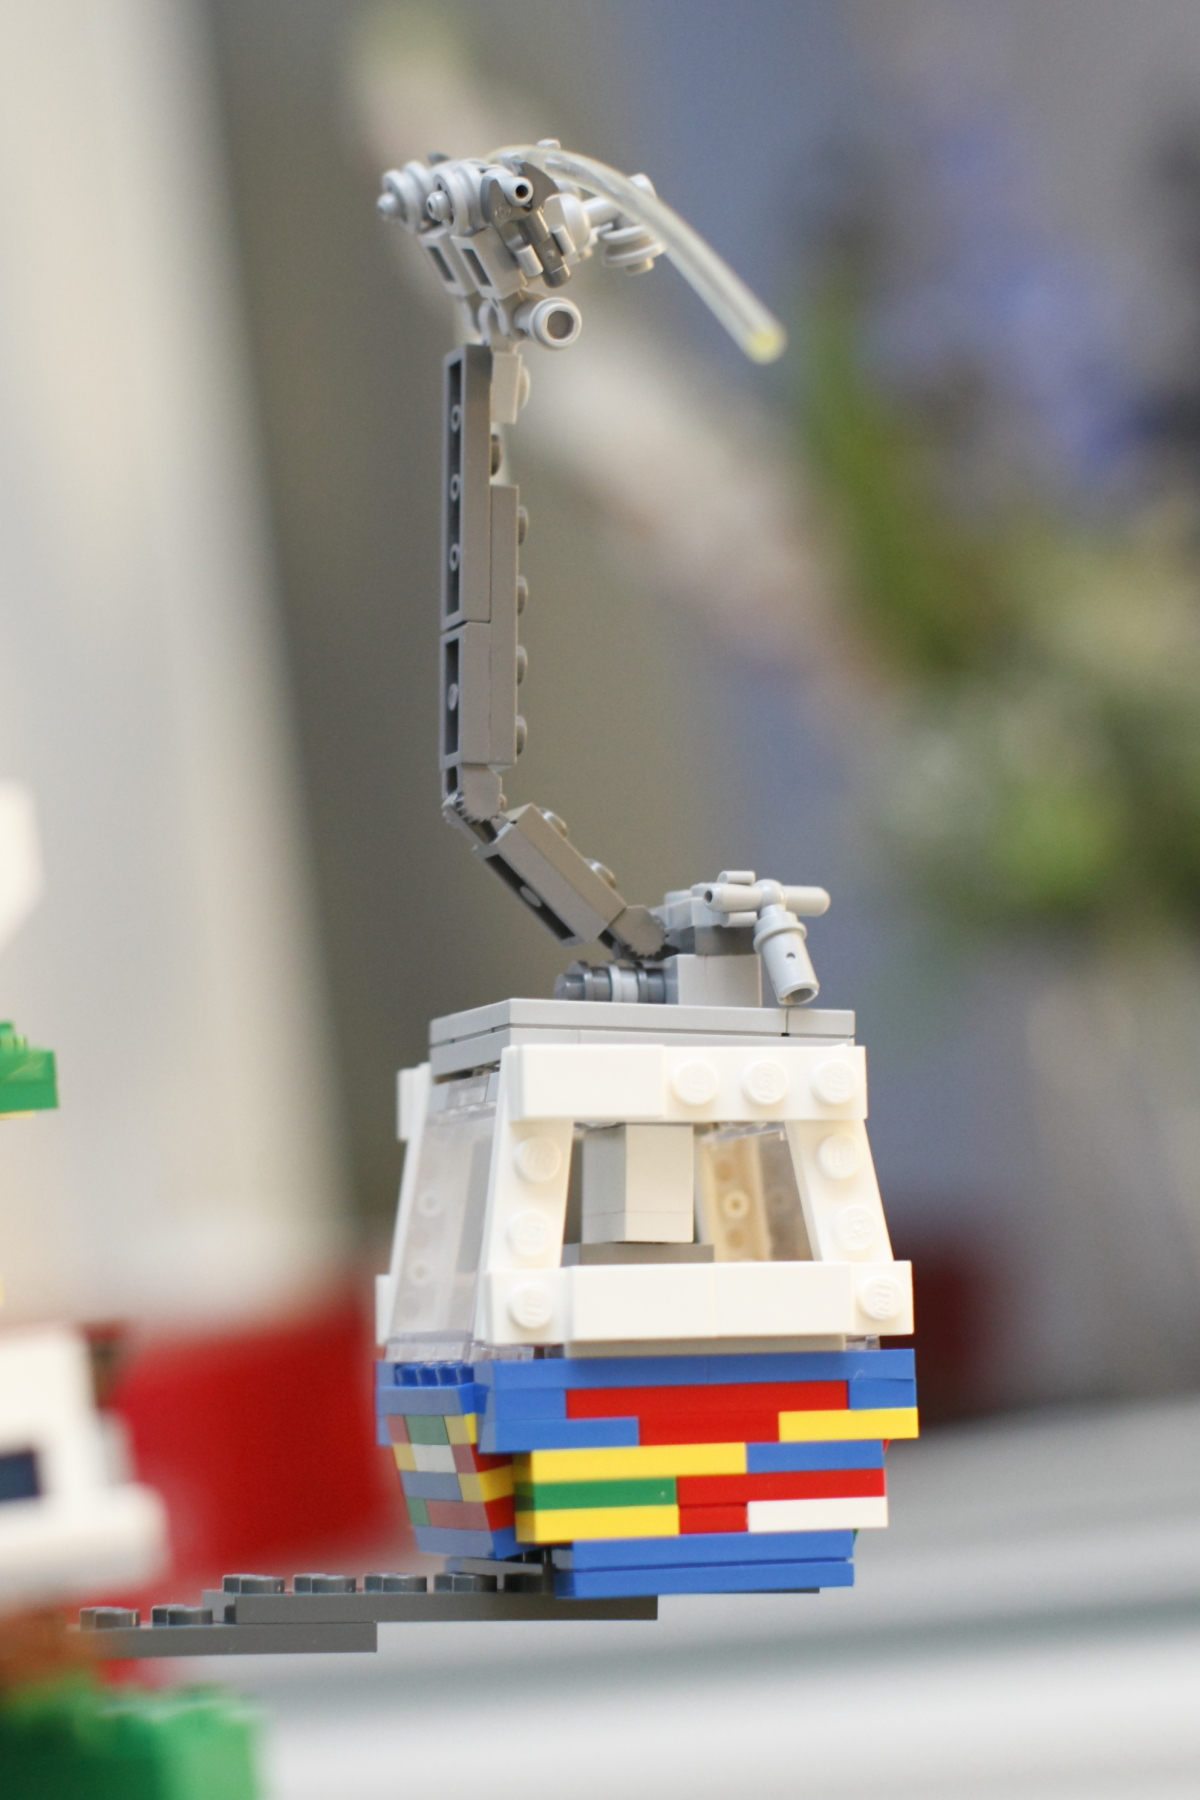 lego2010-ck-hightlight-6s.jpg